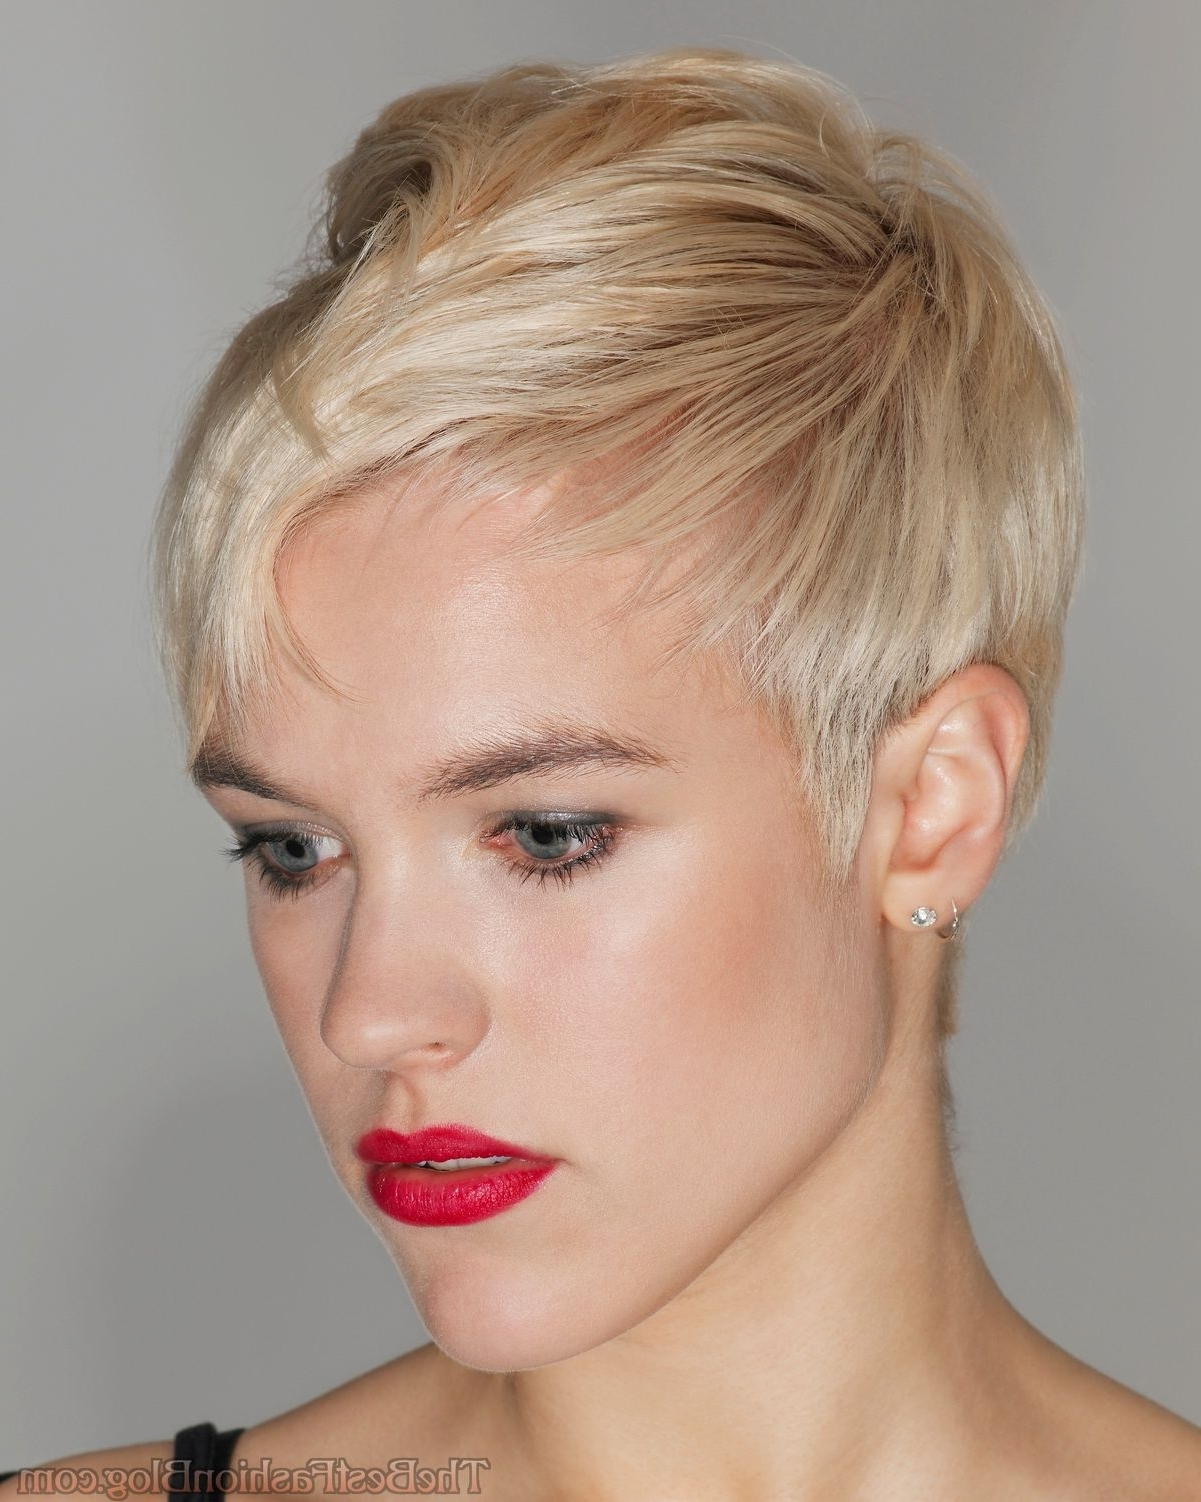 Pixie Haircuts For Women 2018 For Most Current Tousled Pixie Hairstyles (View 7 of 15)